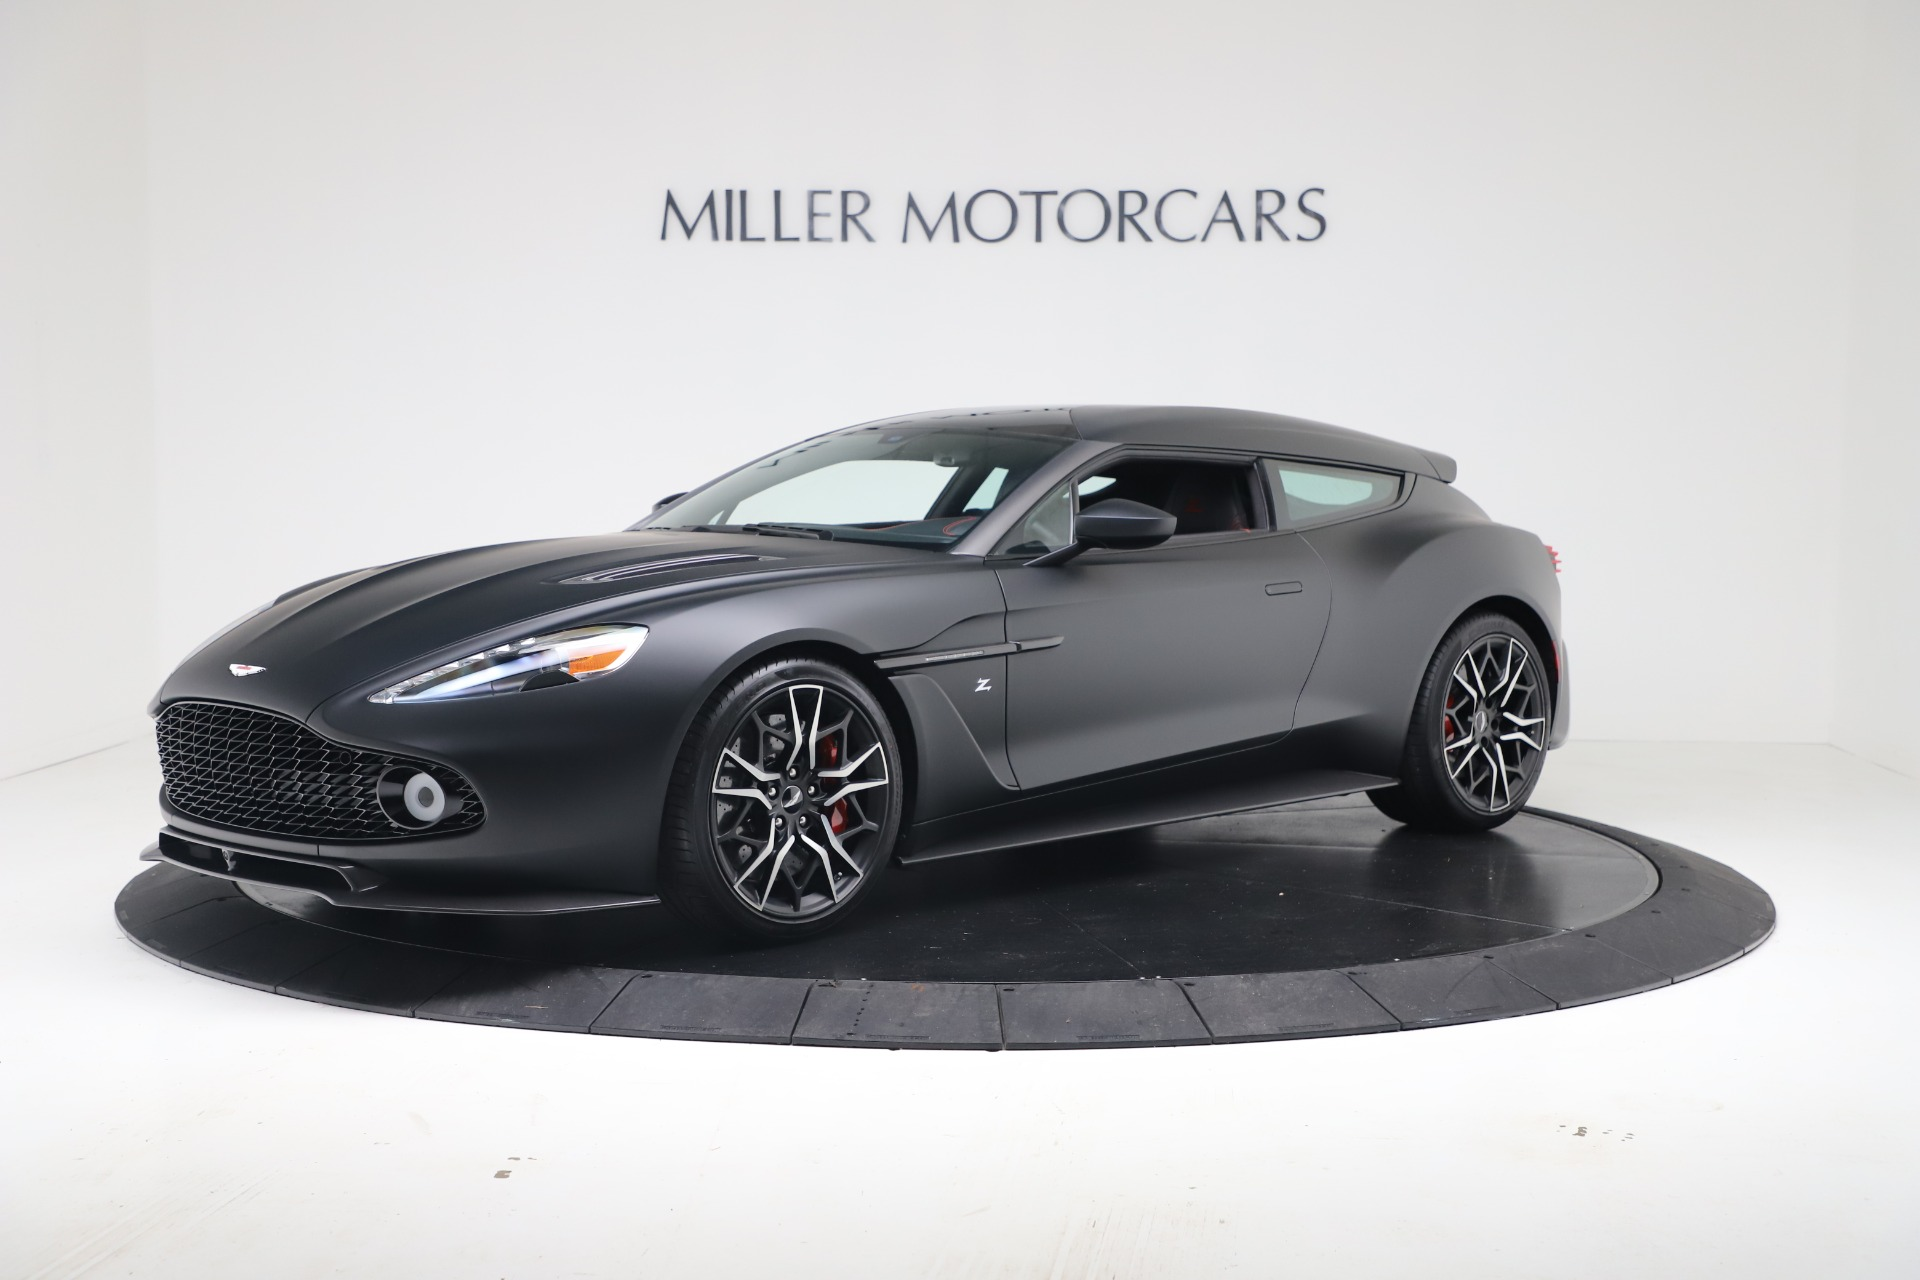 New 2019 Aston Martin Vanquish Zagato Shooting Brake for sale Sold at Rolls-Royce Motor Cars Greenwich in Greenwich CT 06830 1